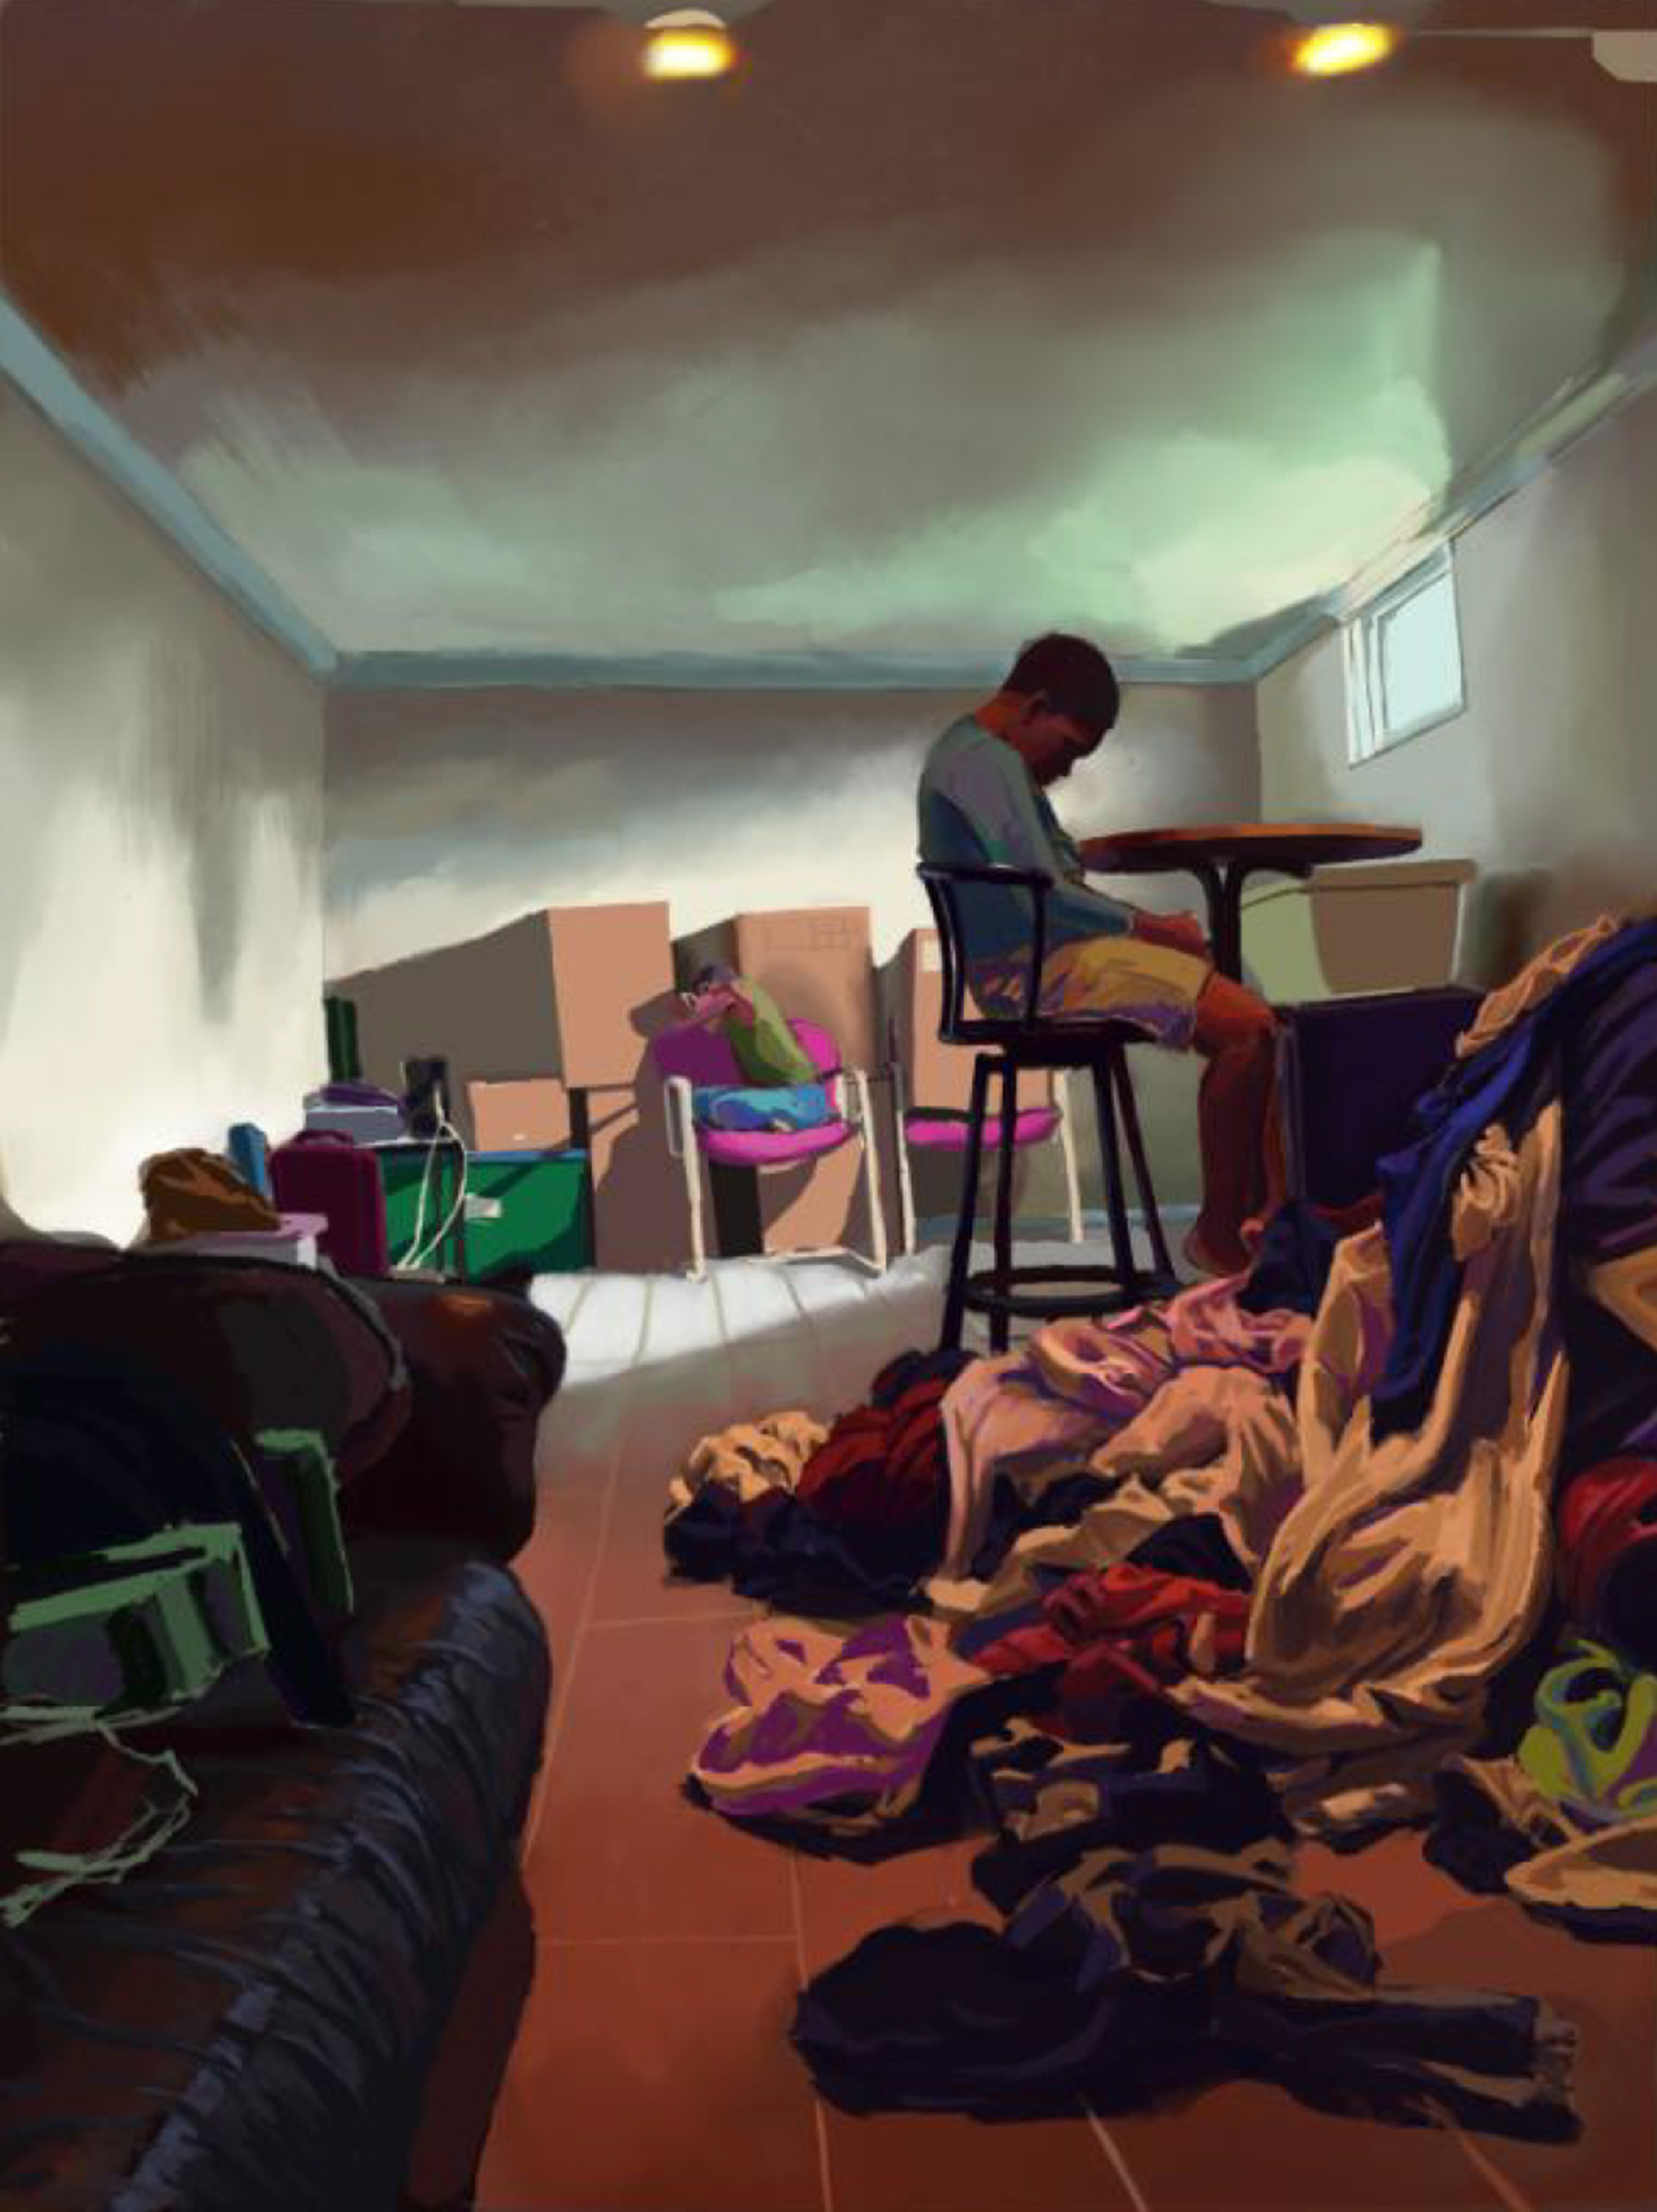 Digital illustration of a cluttered room with a young man seated at a desk, his hand hanging in thought, in the background